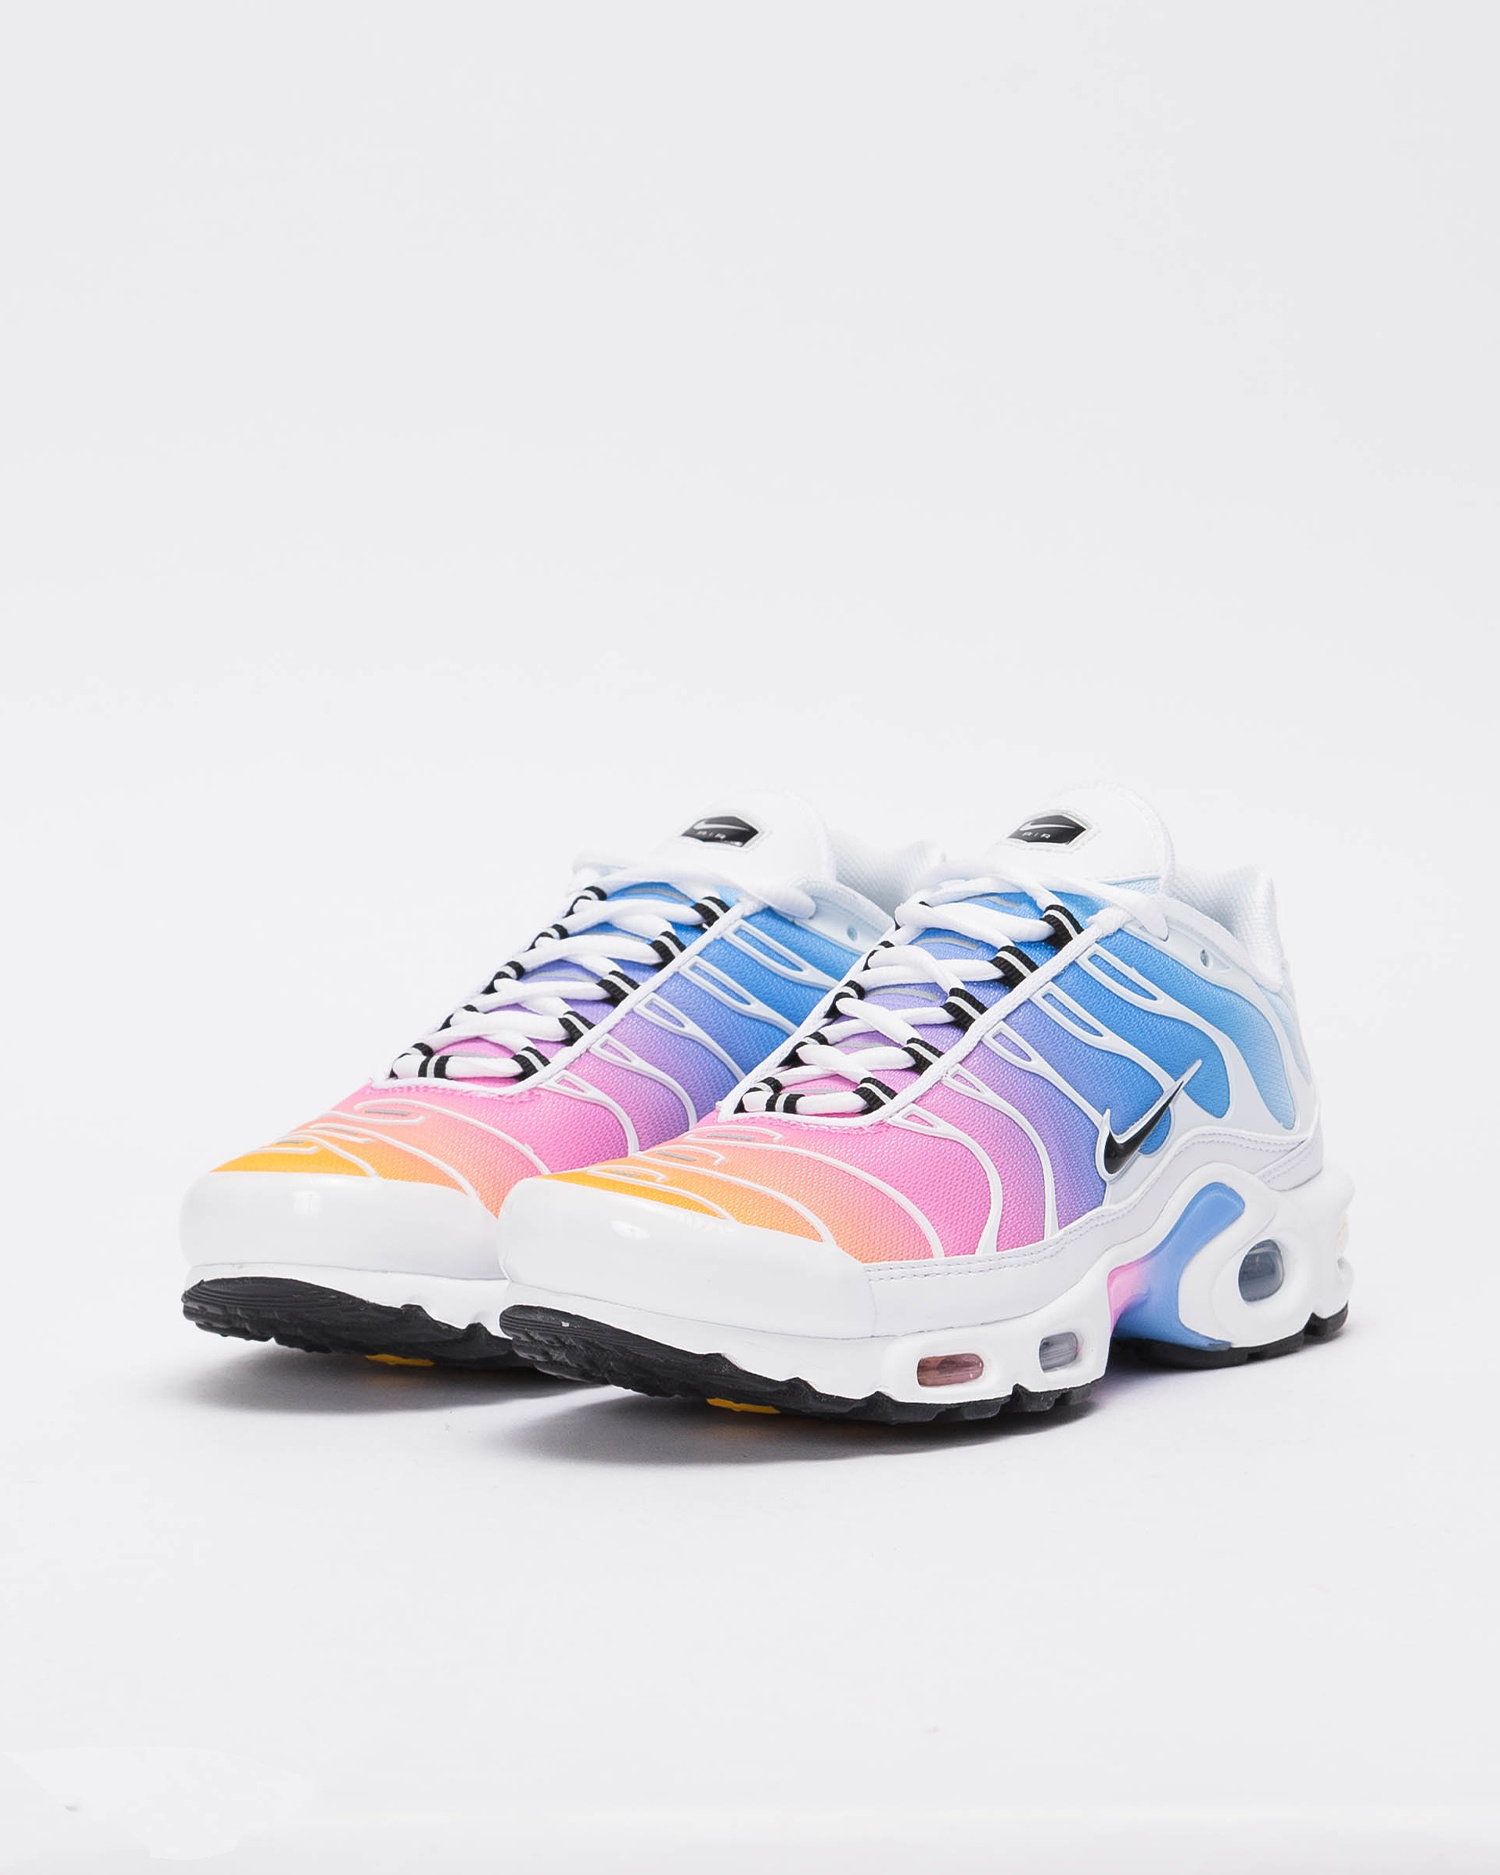 reputable site 59c2d 85e84 W Nike Air Max Plus WHITE BLACK-UNIVERSITY BLUE-PSYCHIC PINK ...